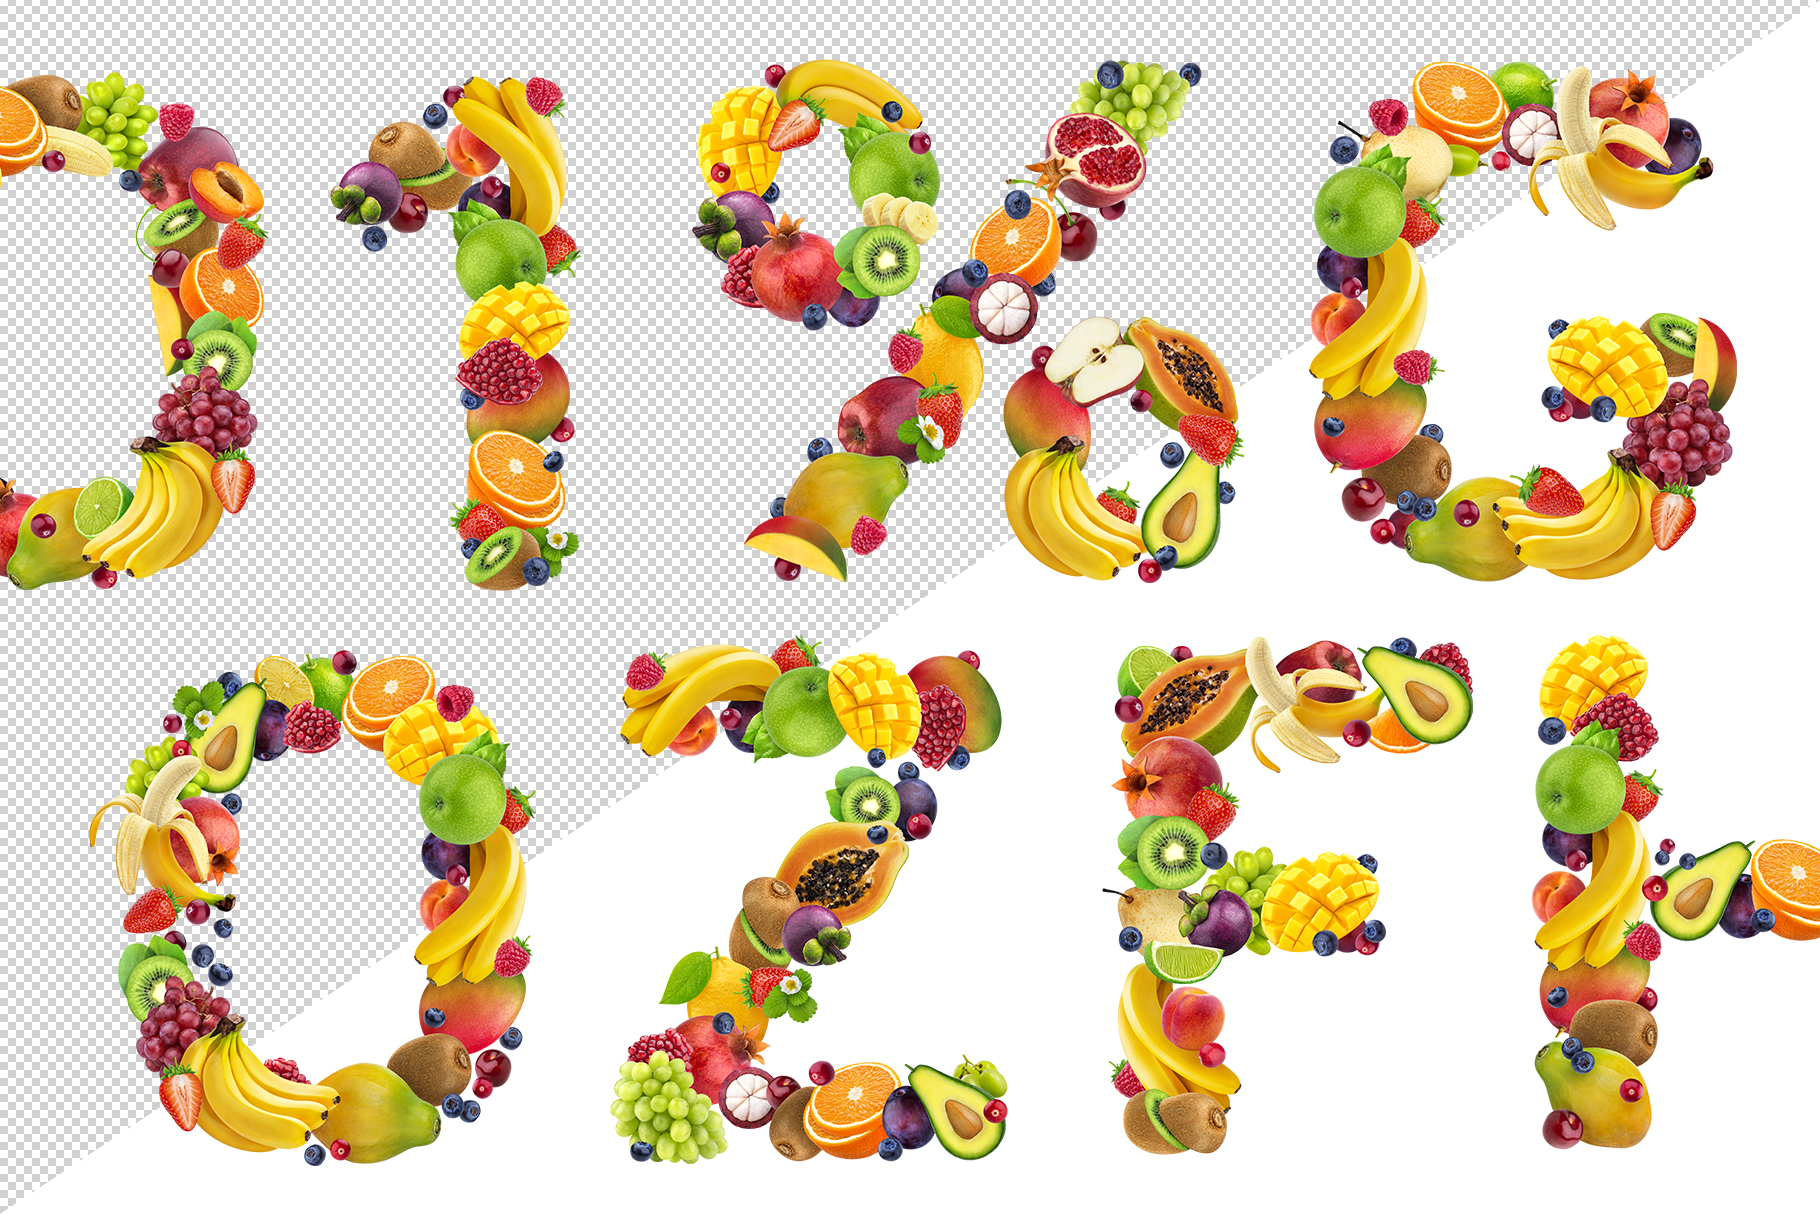 Fruits and berries alphabet, healthy alphabet example image 7